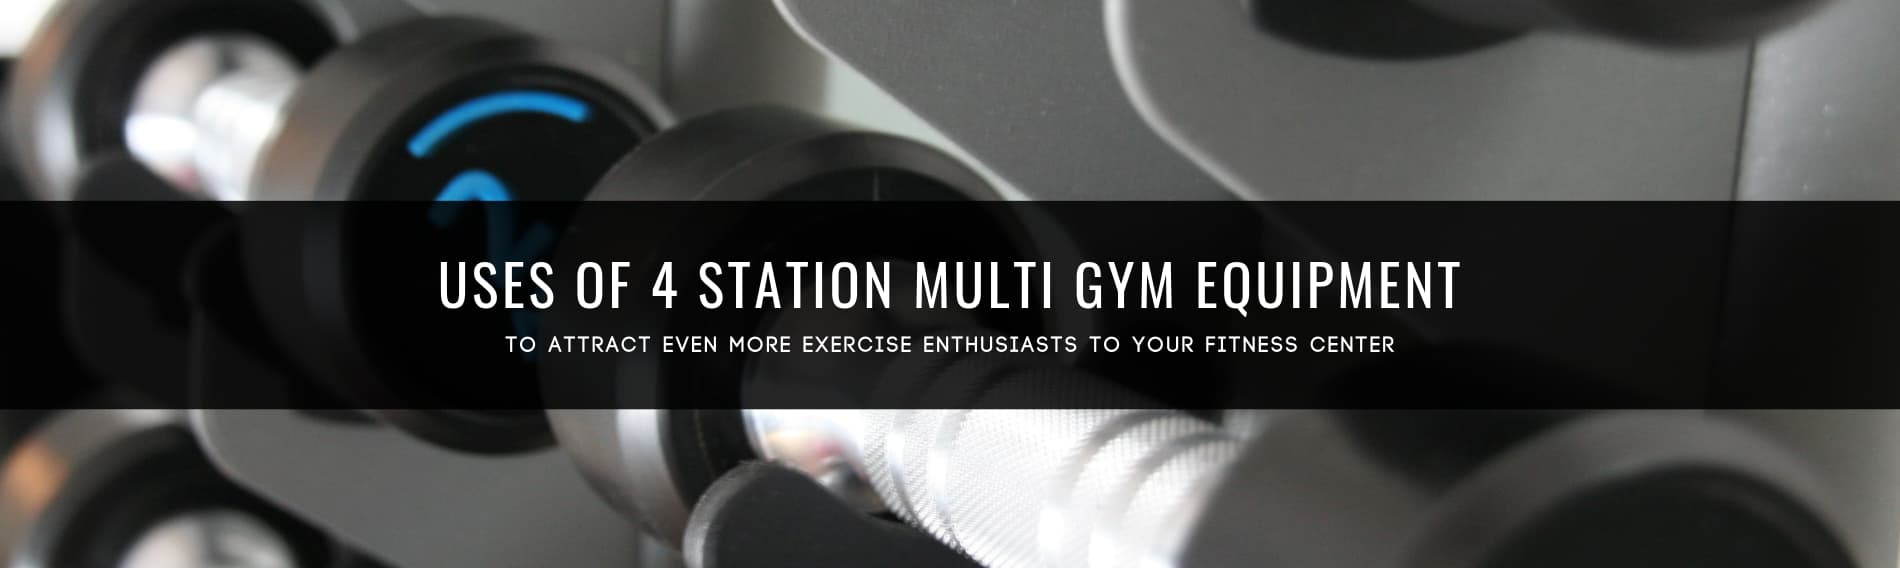 Uses of 4 Station Multi Gym Equipment And Machine